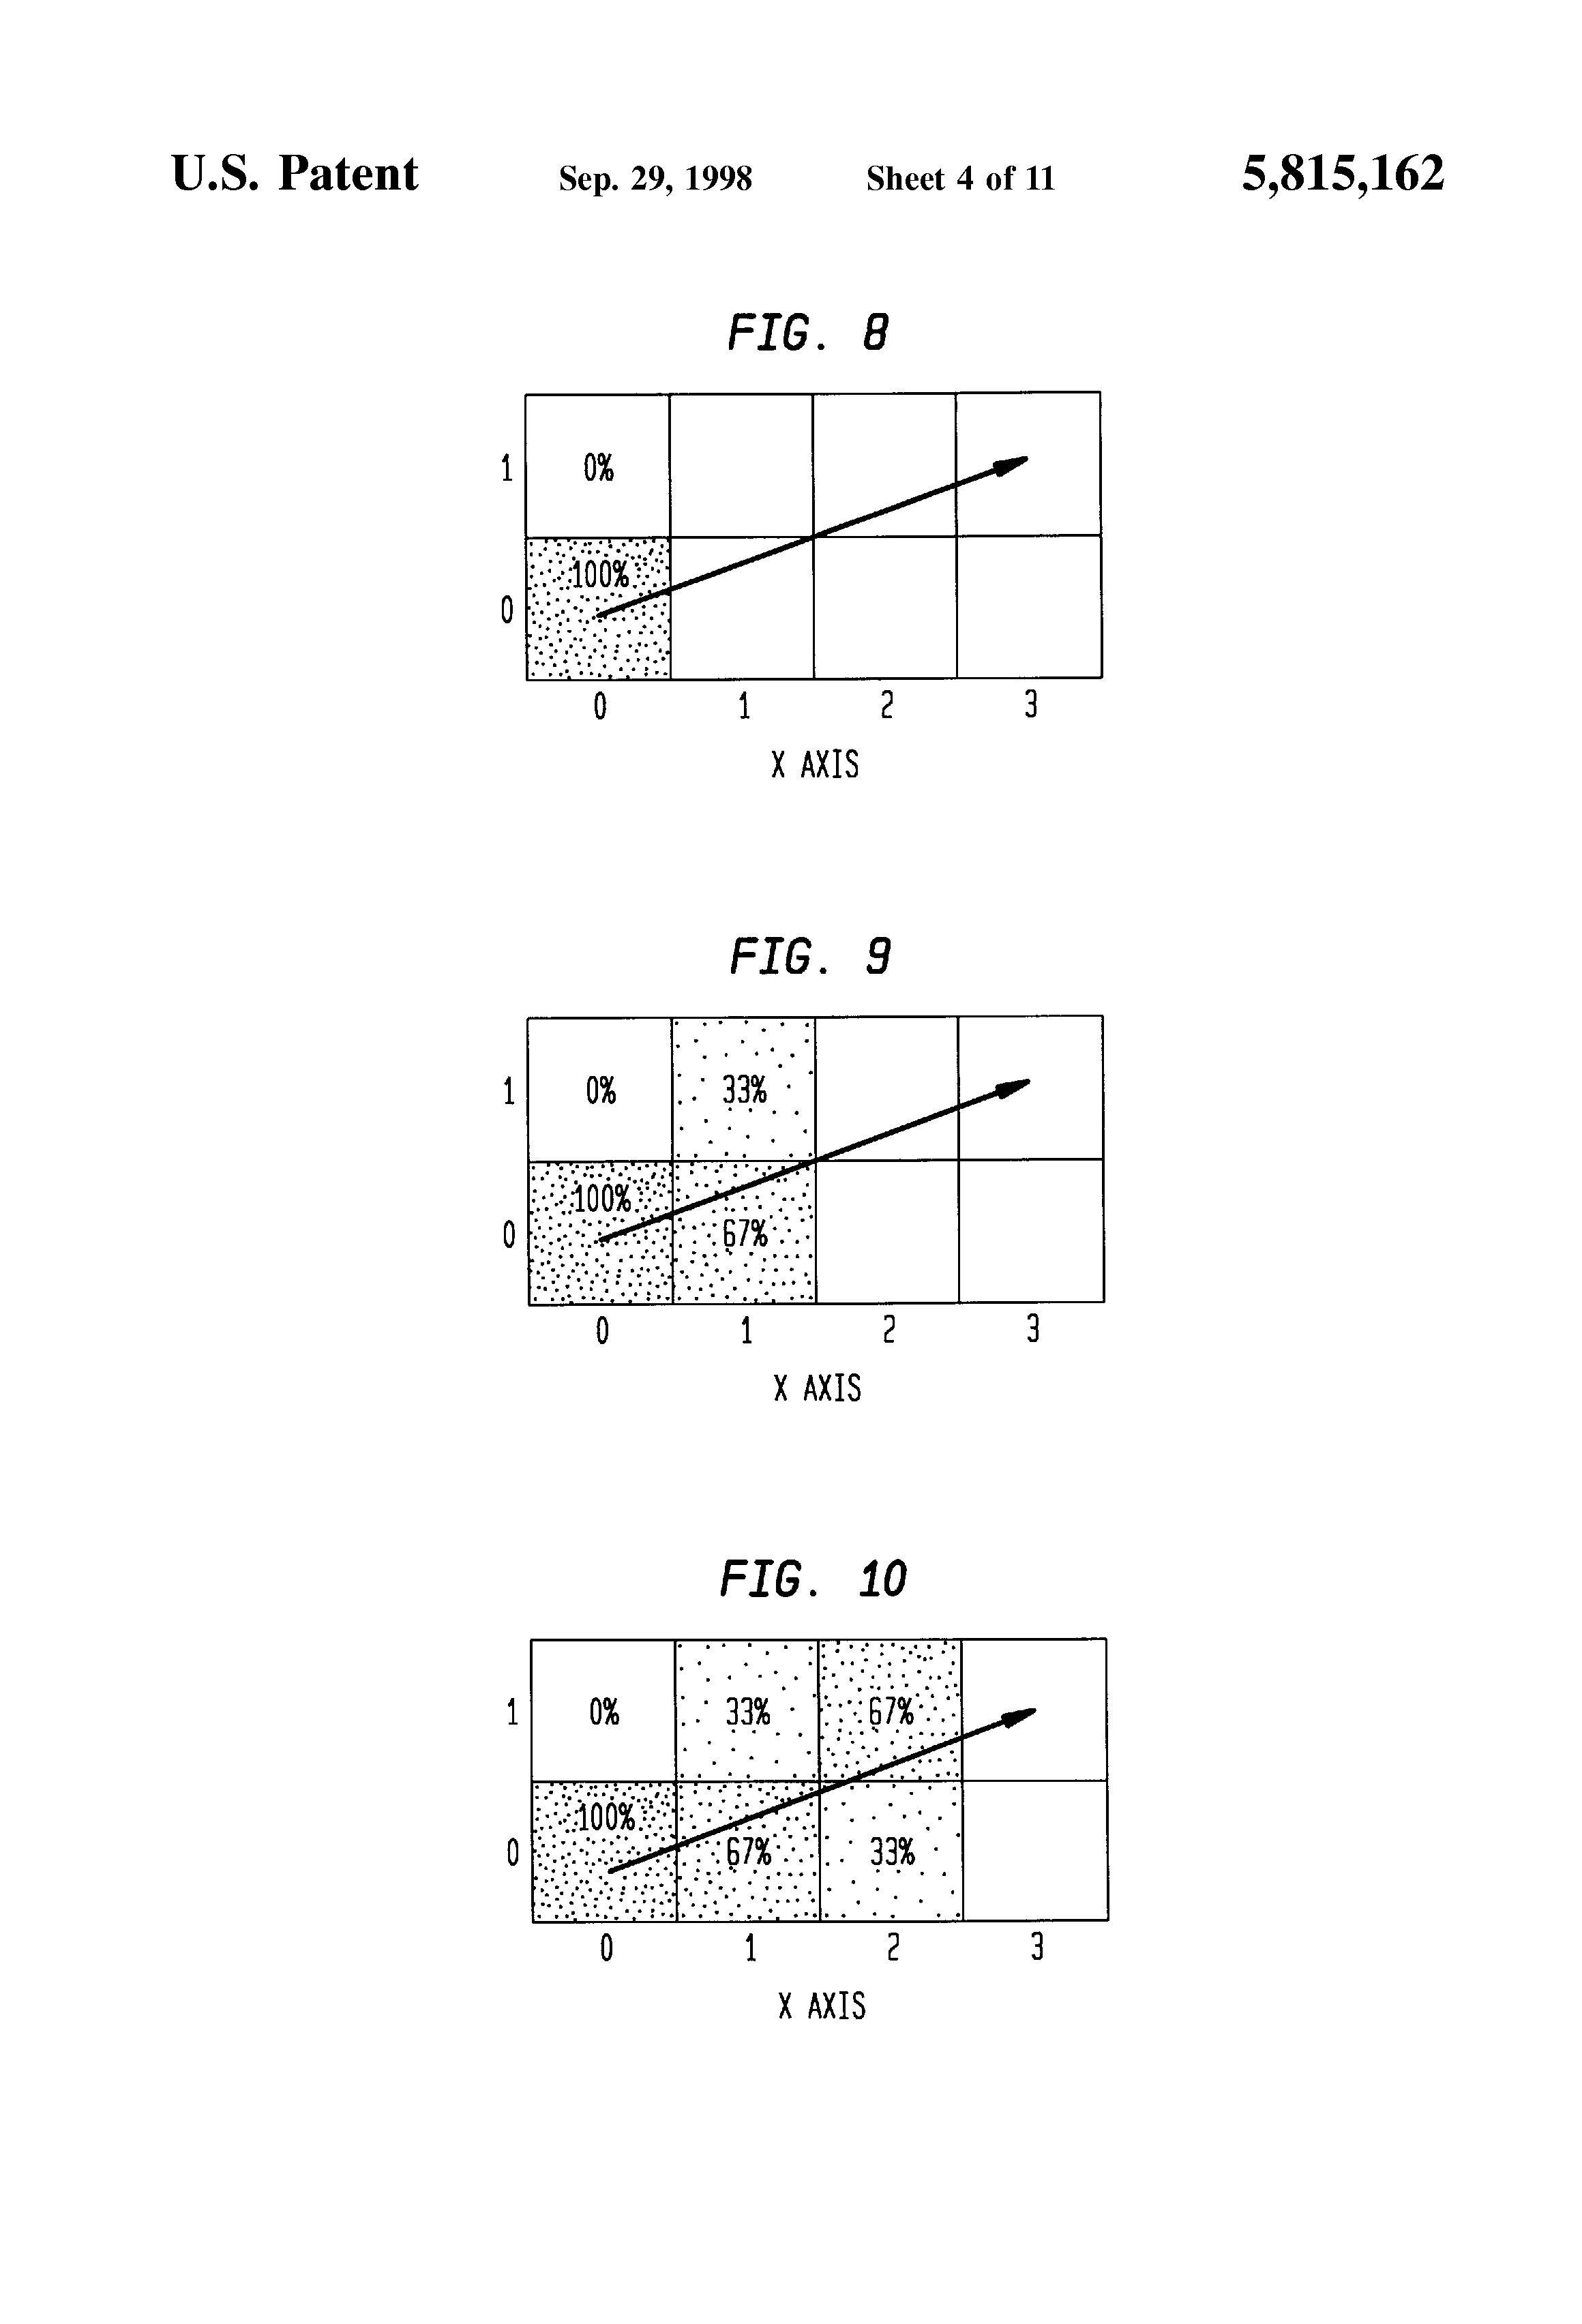 Bresenham Line Drawing Algorithm For Positive Slope : Patent us system and method of drawing anti